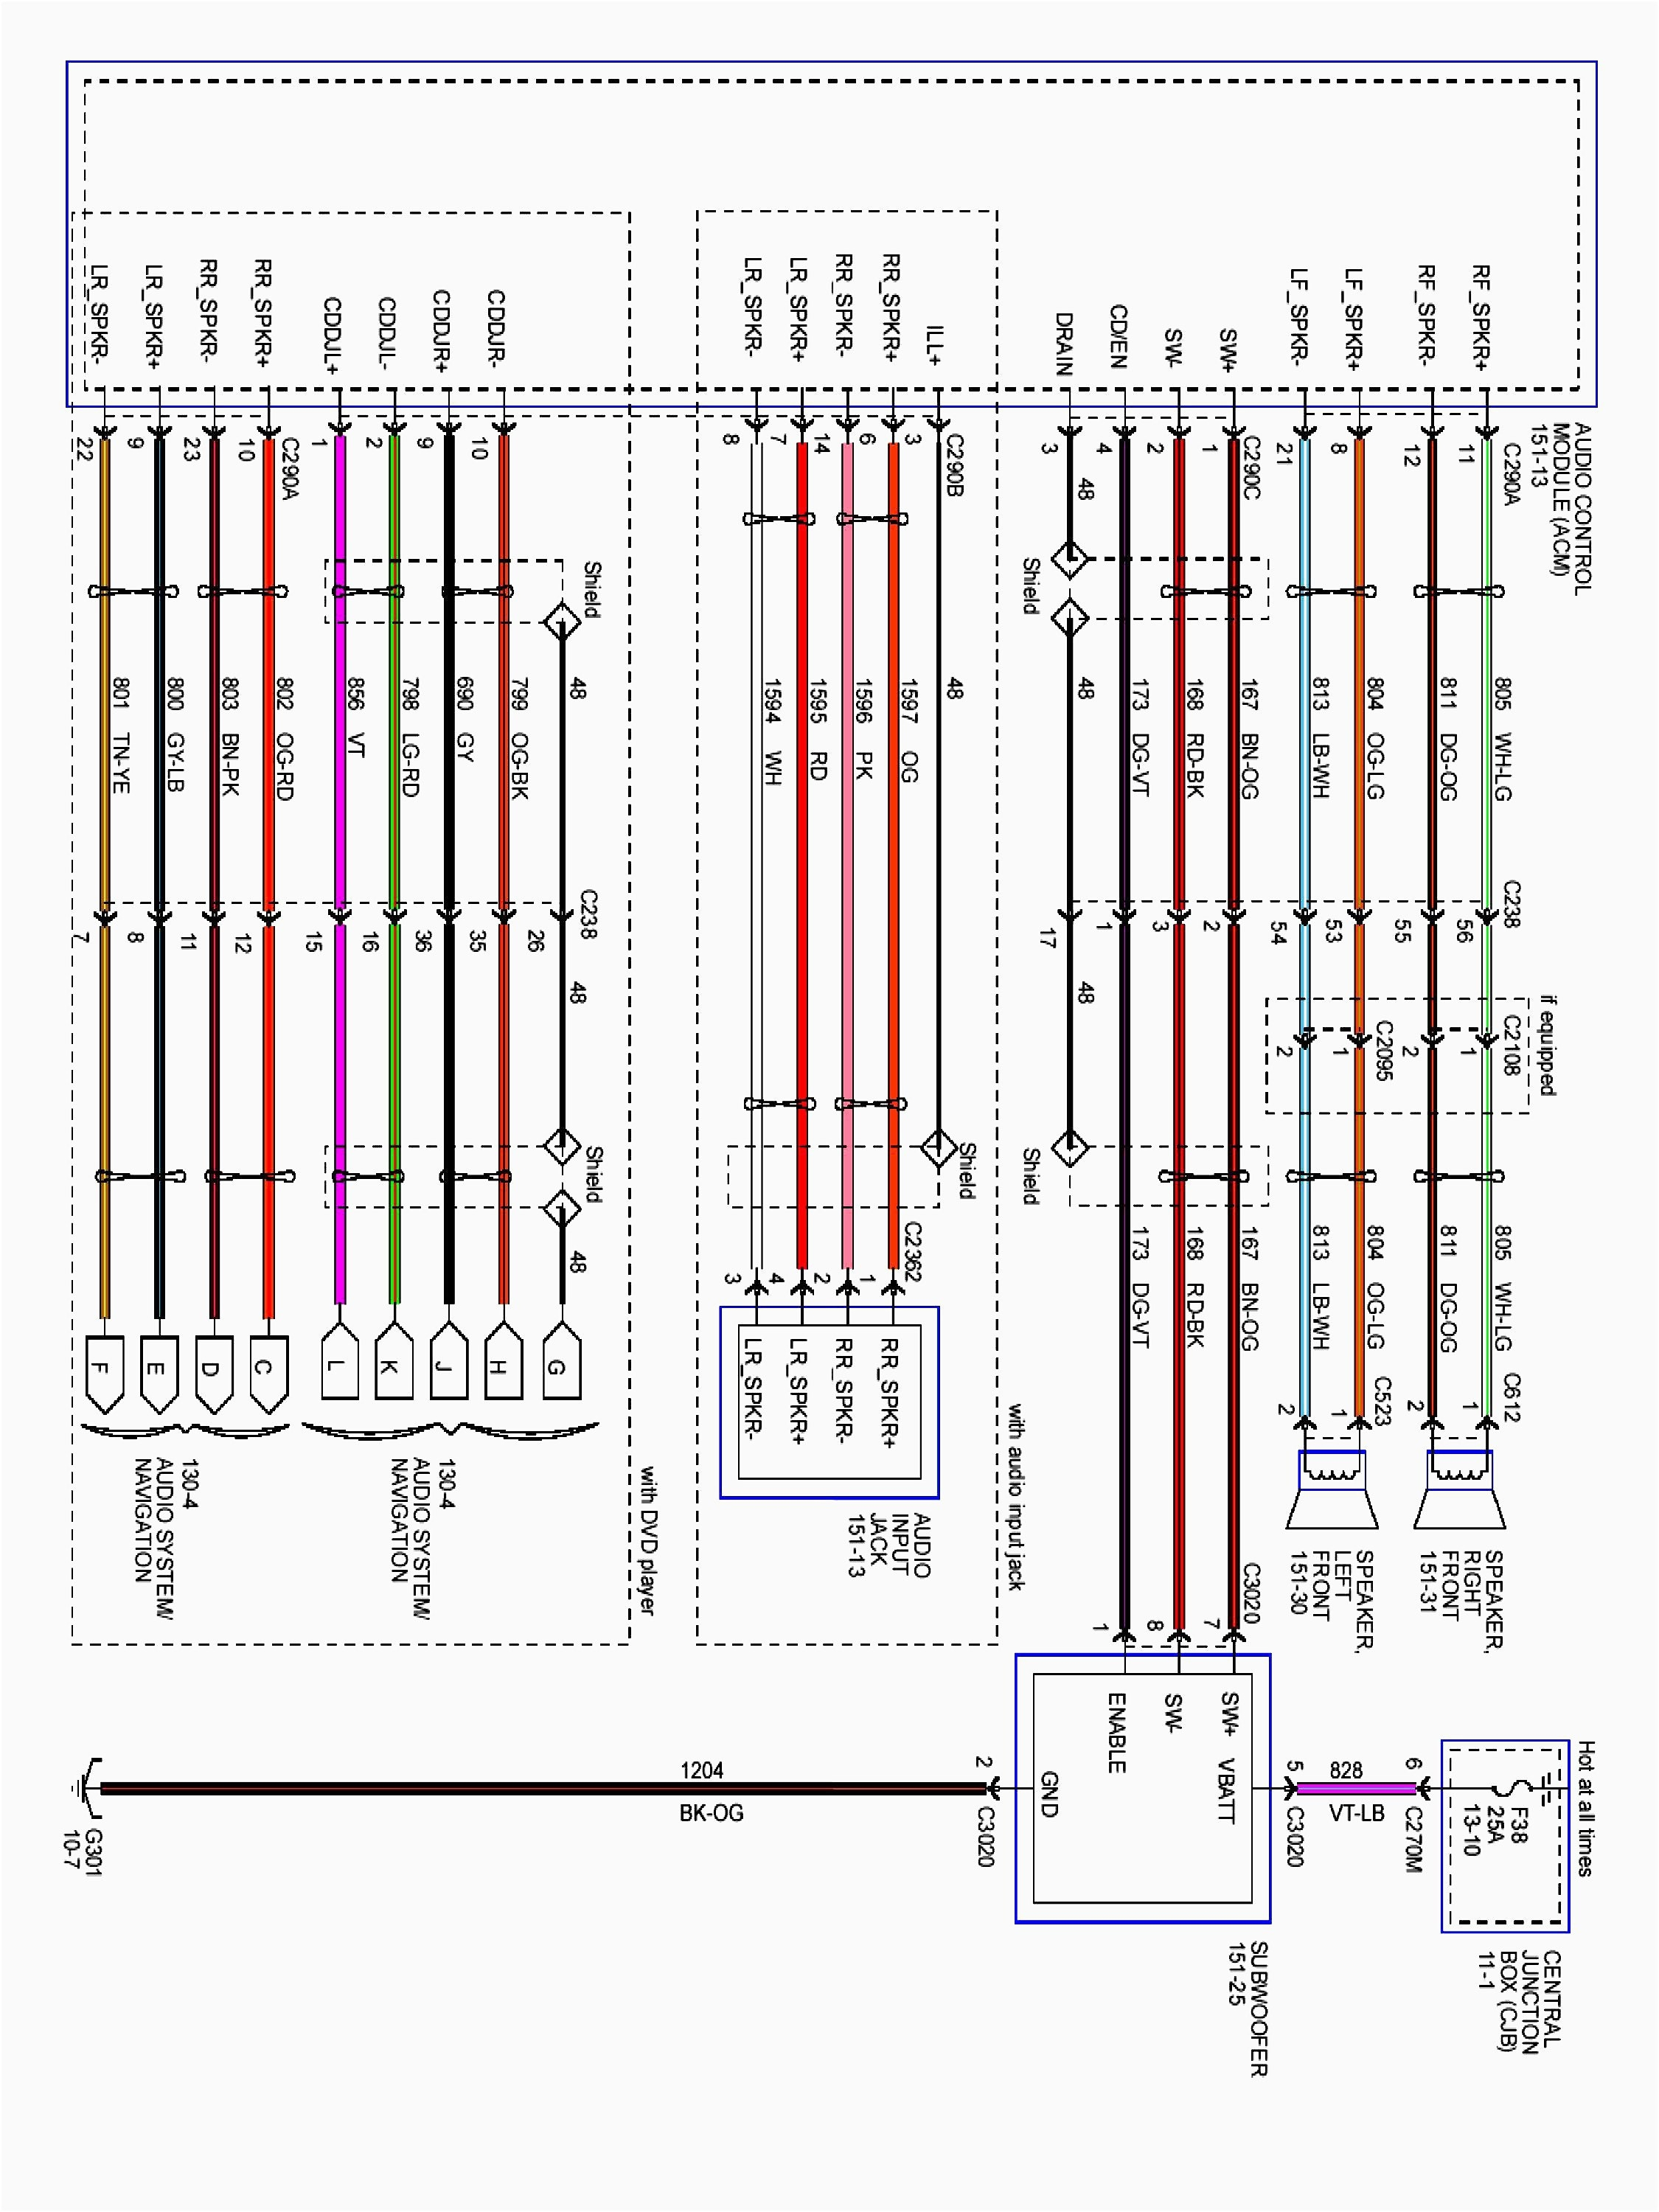 06 f150 abs wiring diagram wire center u2022 rh 207 246 102 26